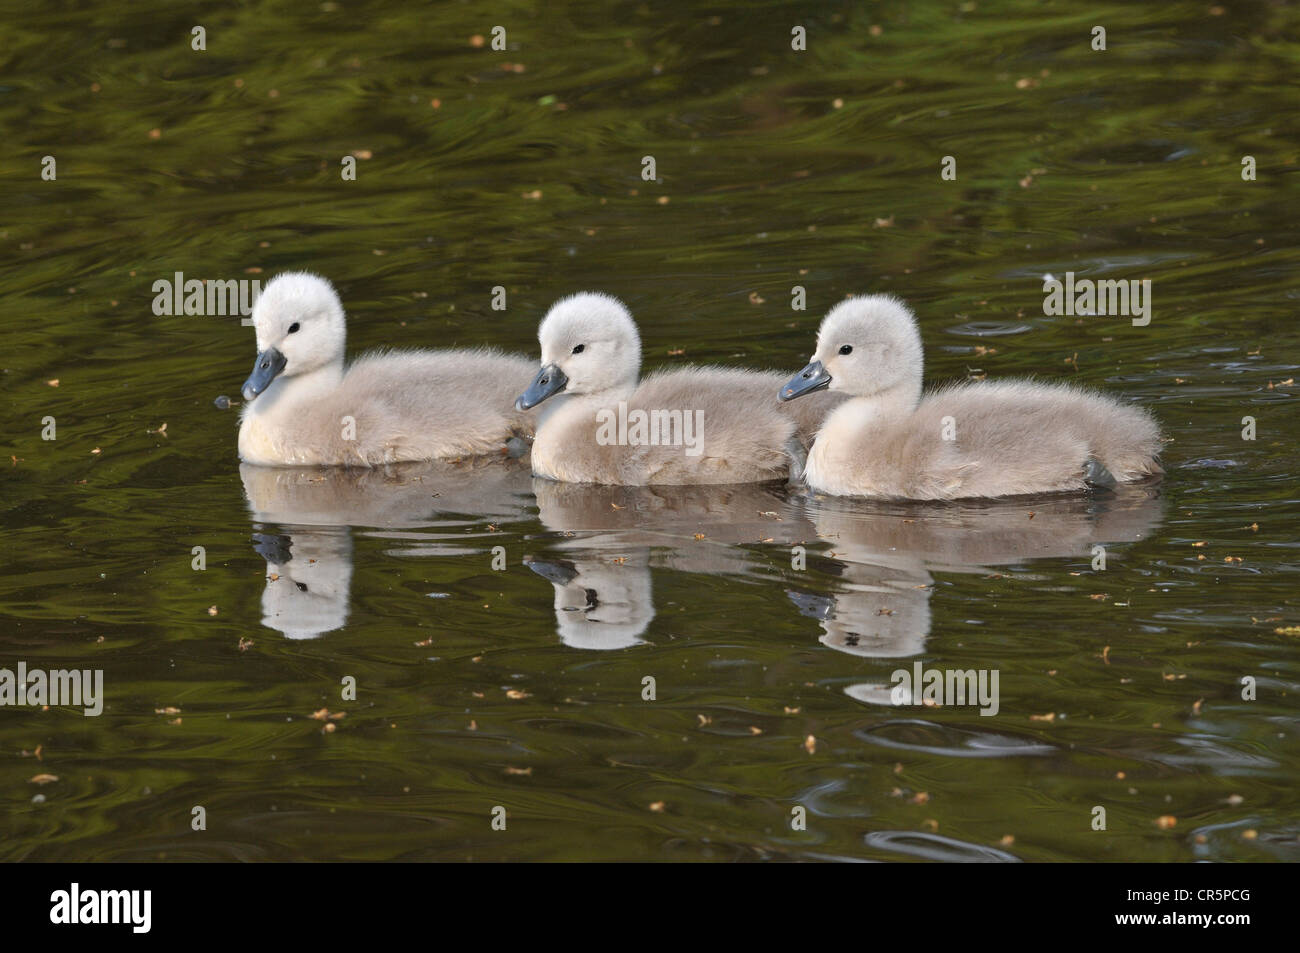 Mute Swans (Cygnus olor), three little fluffy chicks floating on the water, with a mirror image, Germany, Europe - Stock Image